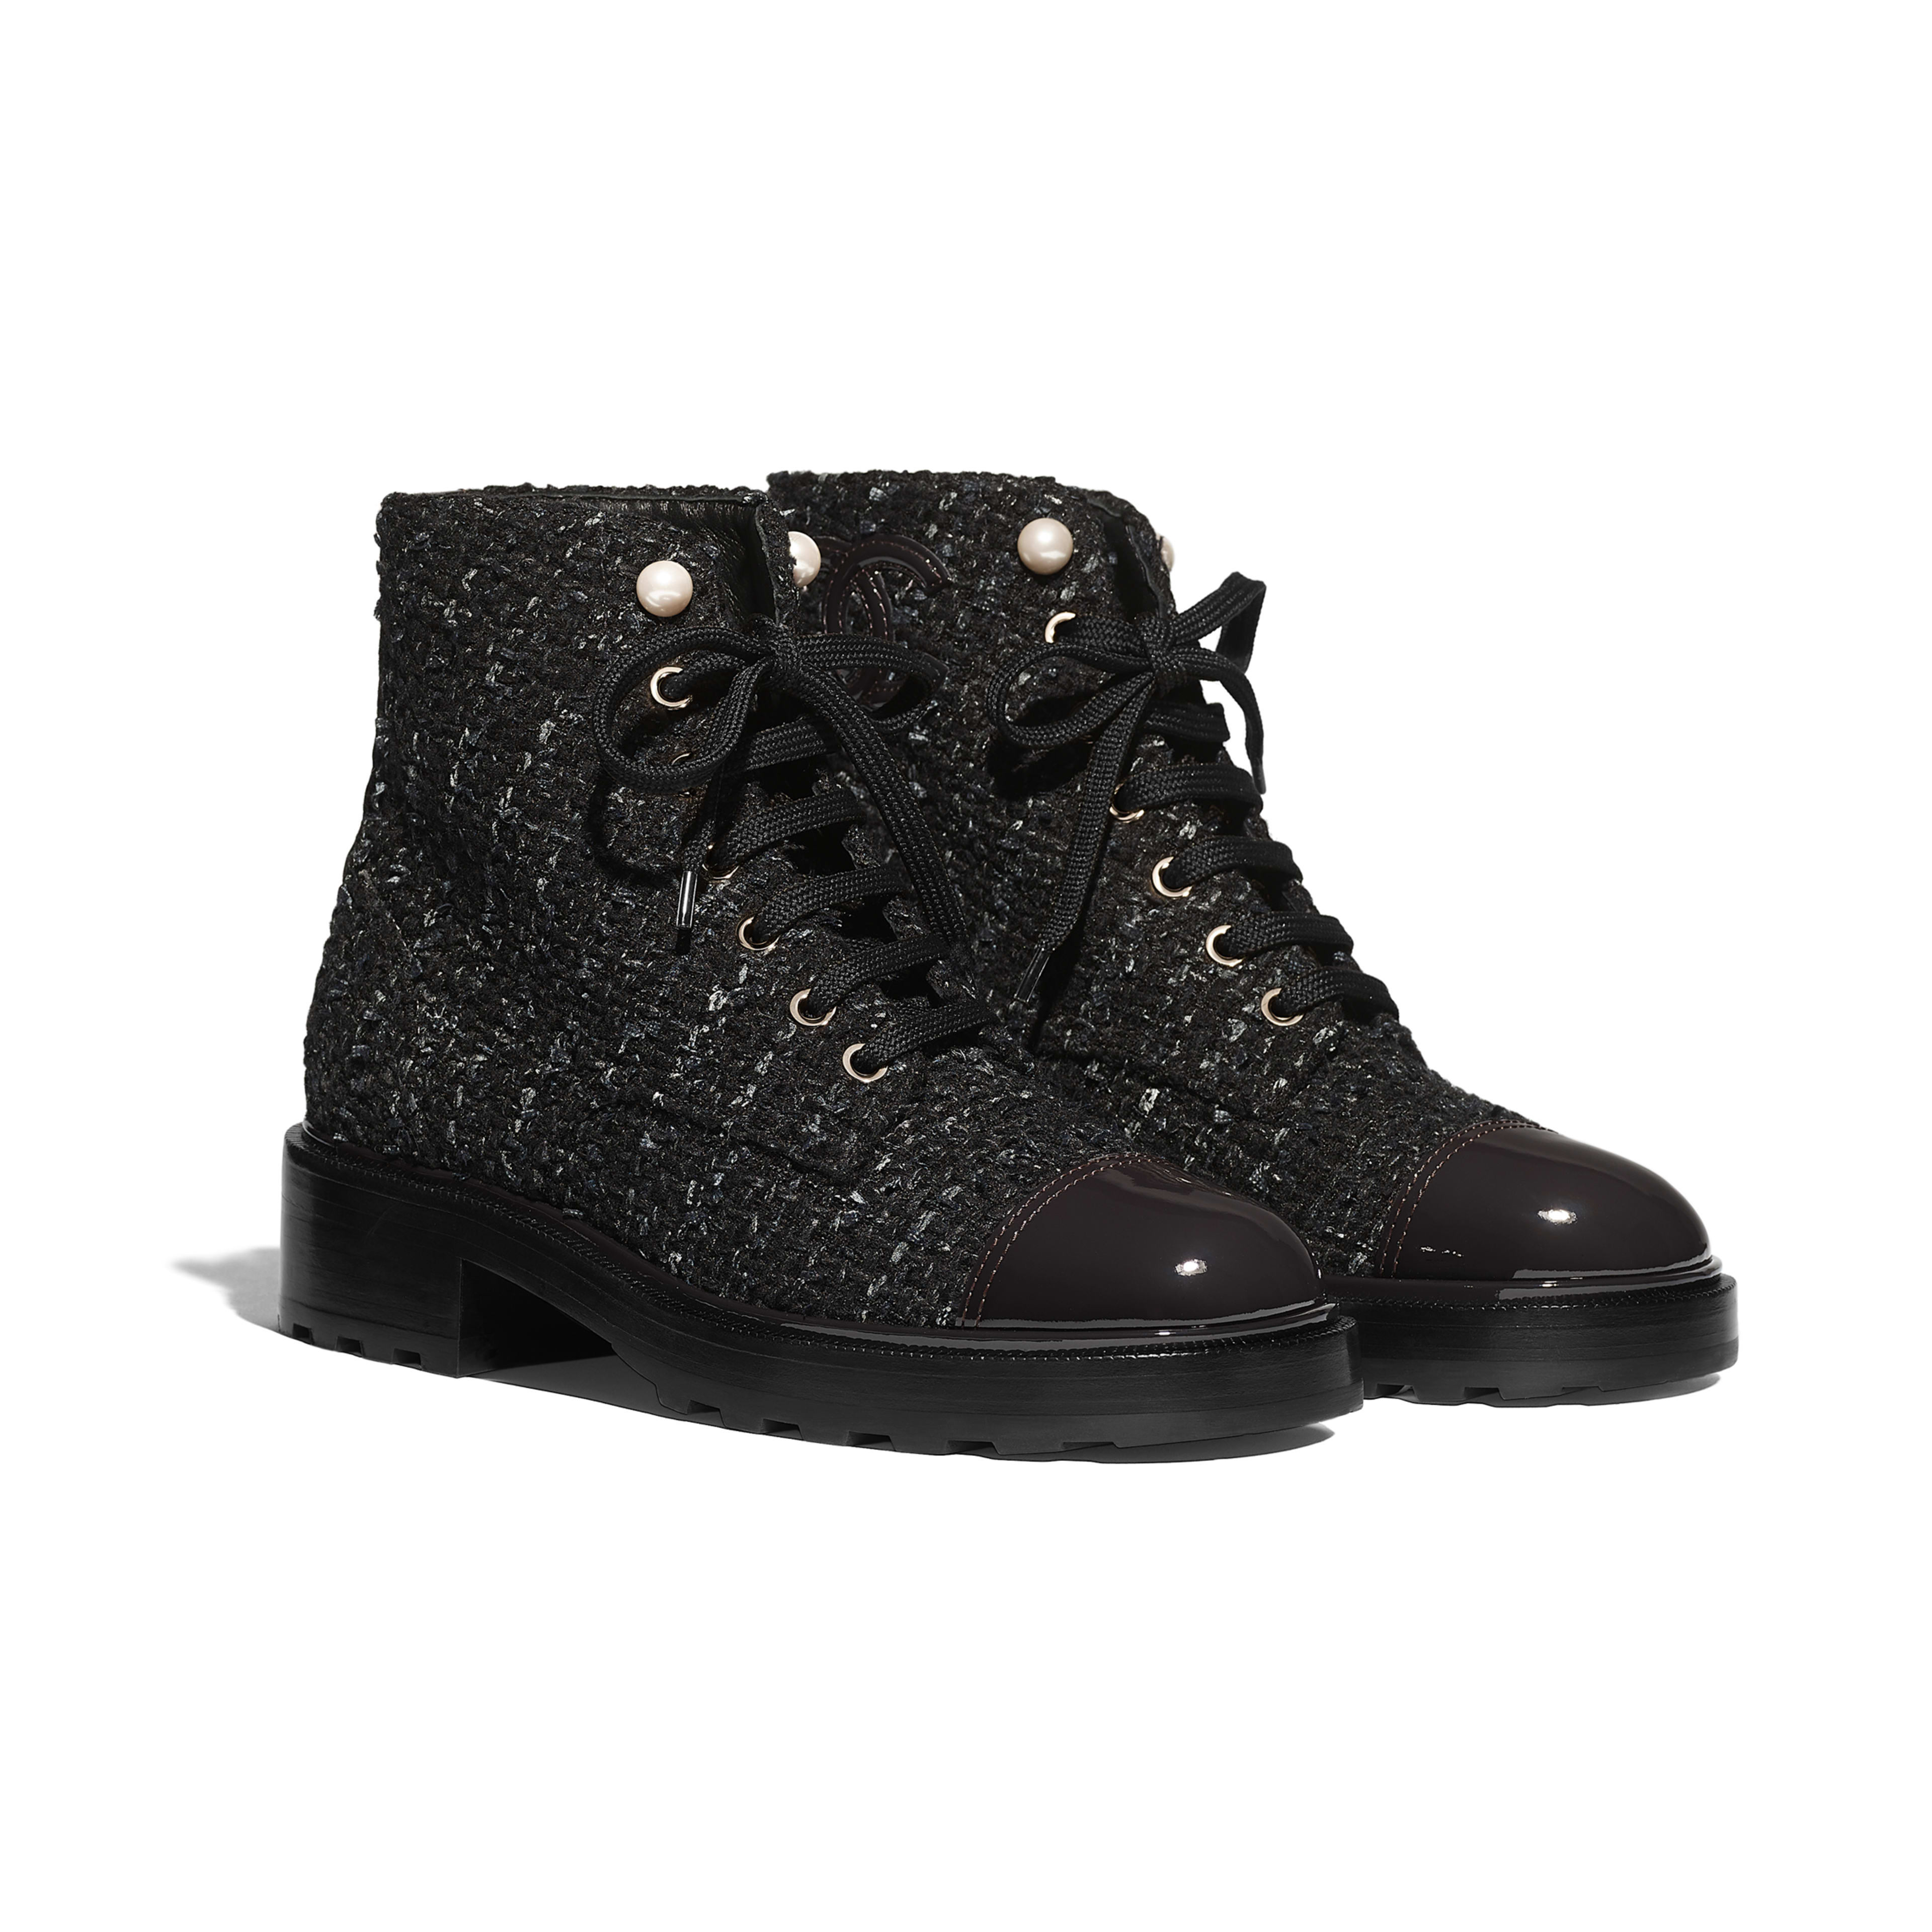 Ankle Boots - Black, Blue & Gray - Tweed & Patent Calfskin - Alternative view - see full sized version